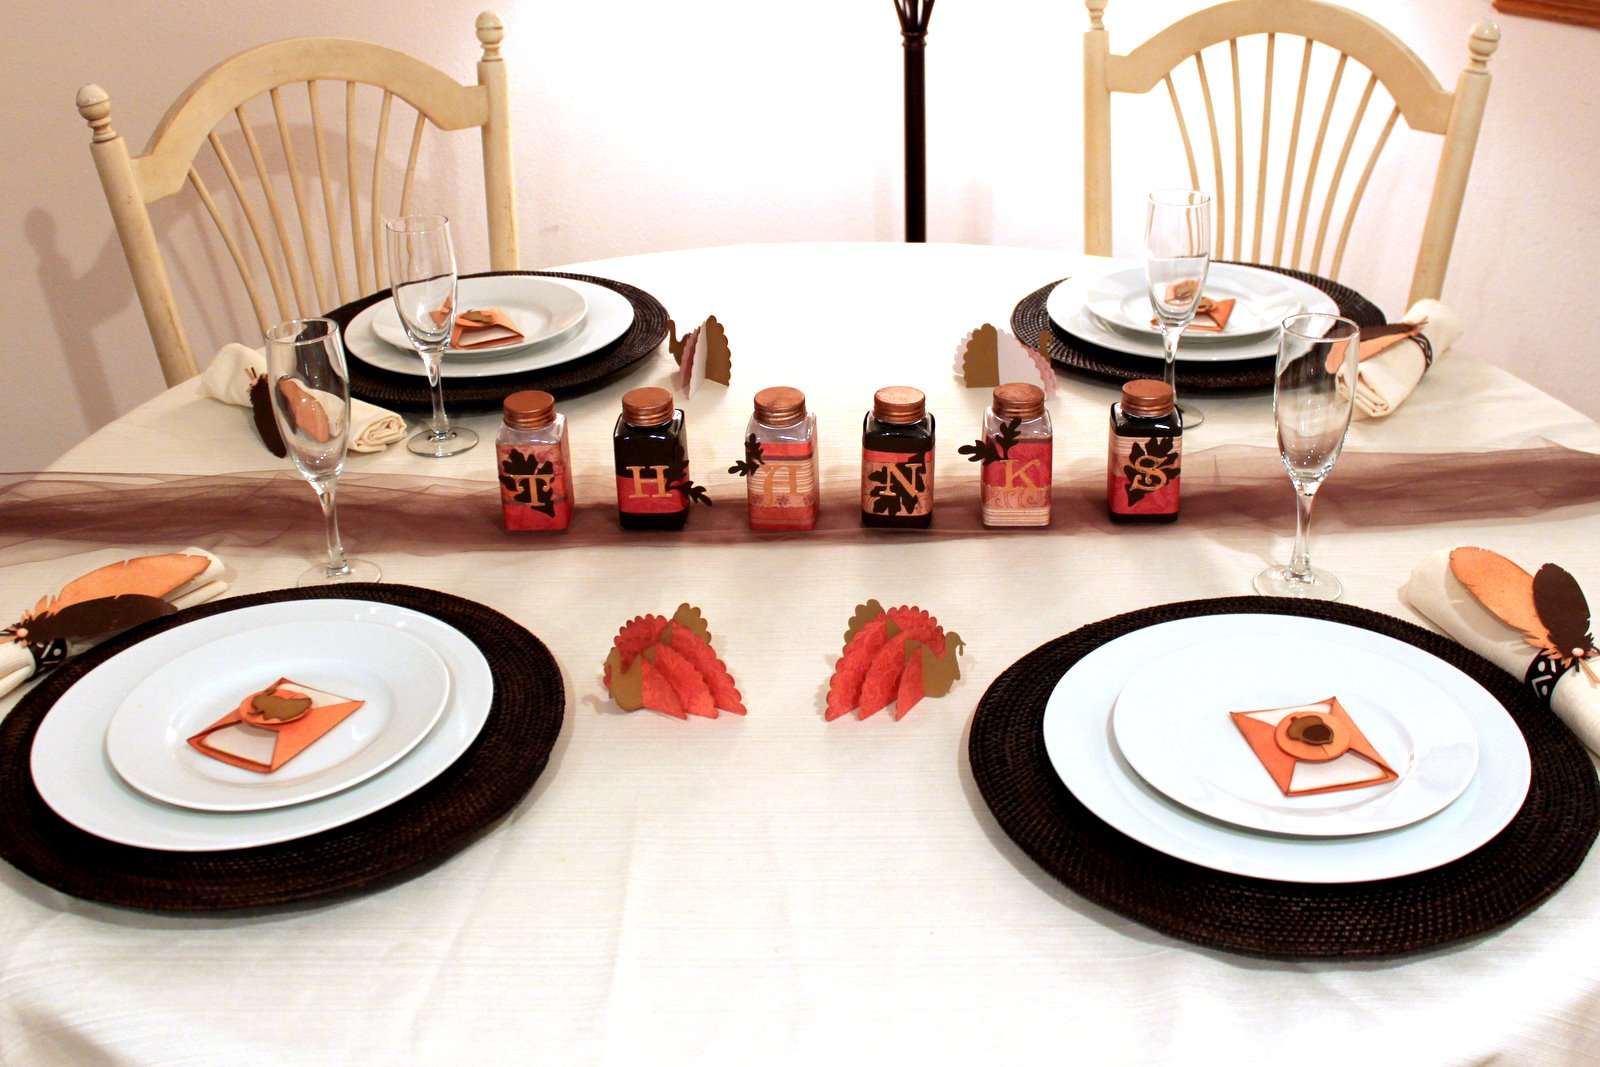 ... My Crafts Blog: Thanksgiving Table Decor Featuring Lifestyle Crafts